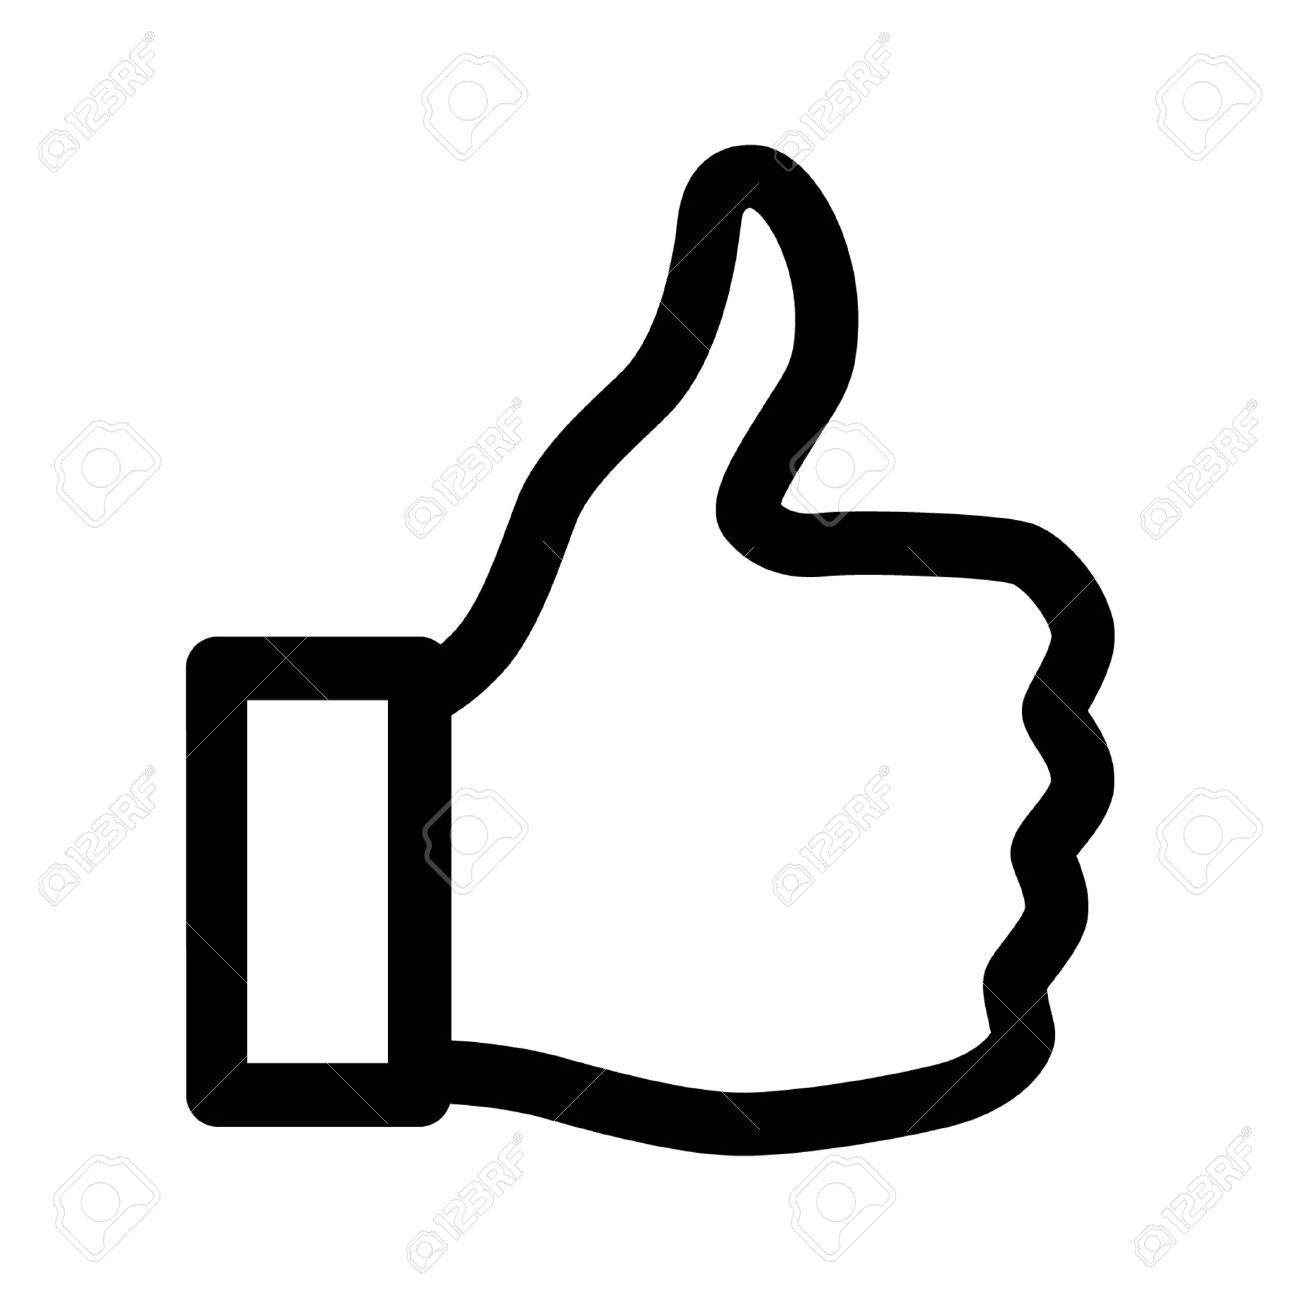 thumbs up like line art icon for apps and websites royalty free